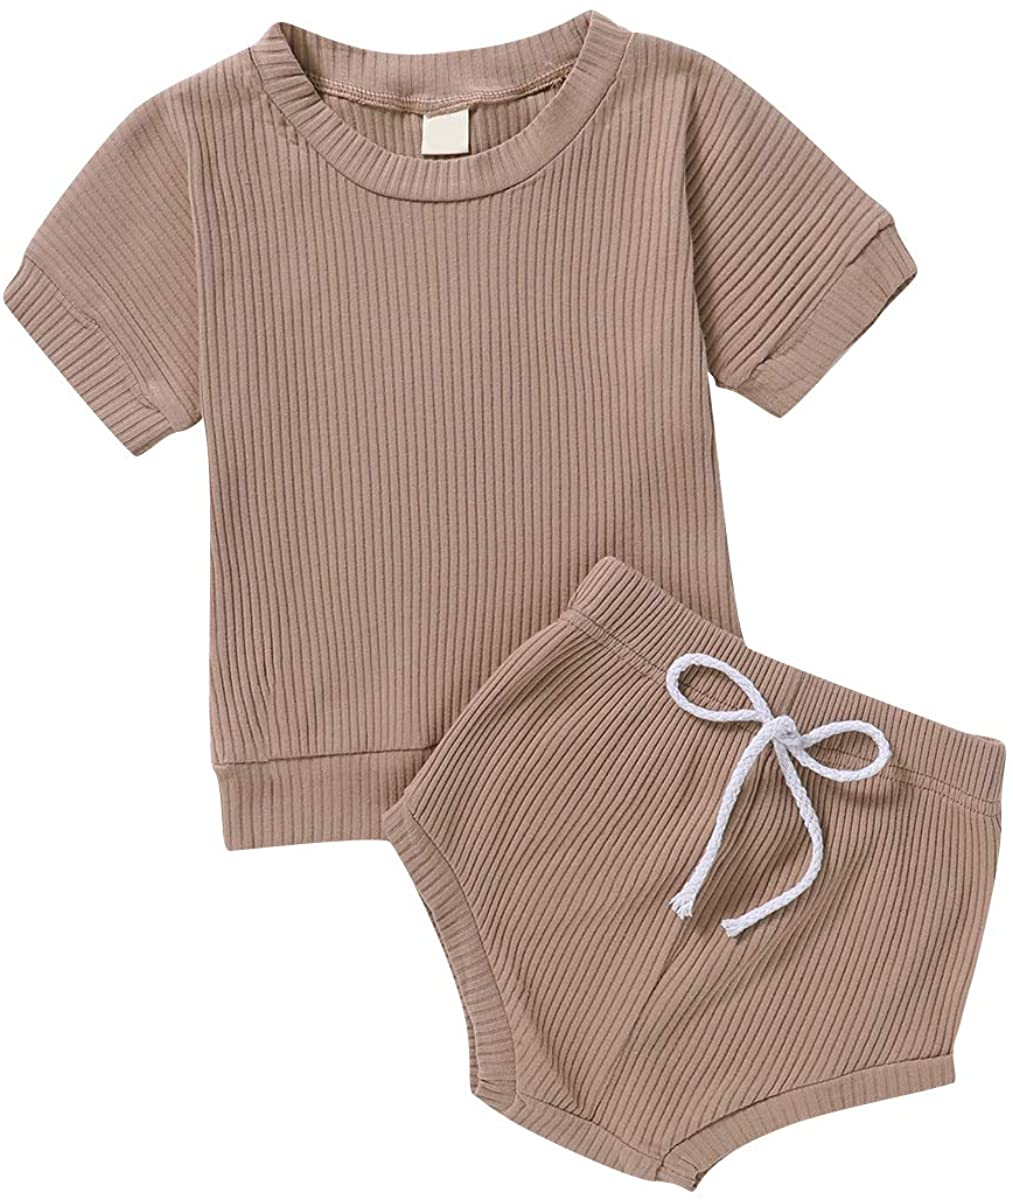 Toddler Newborn Baby Boy Girl Summer Short Set Clothes Ribbed Knit T-Shirt Top Drawstring Shorts 2pcs Outfit